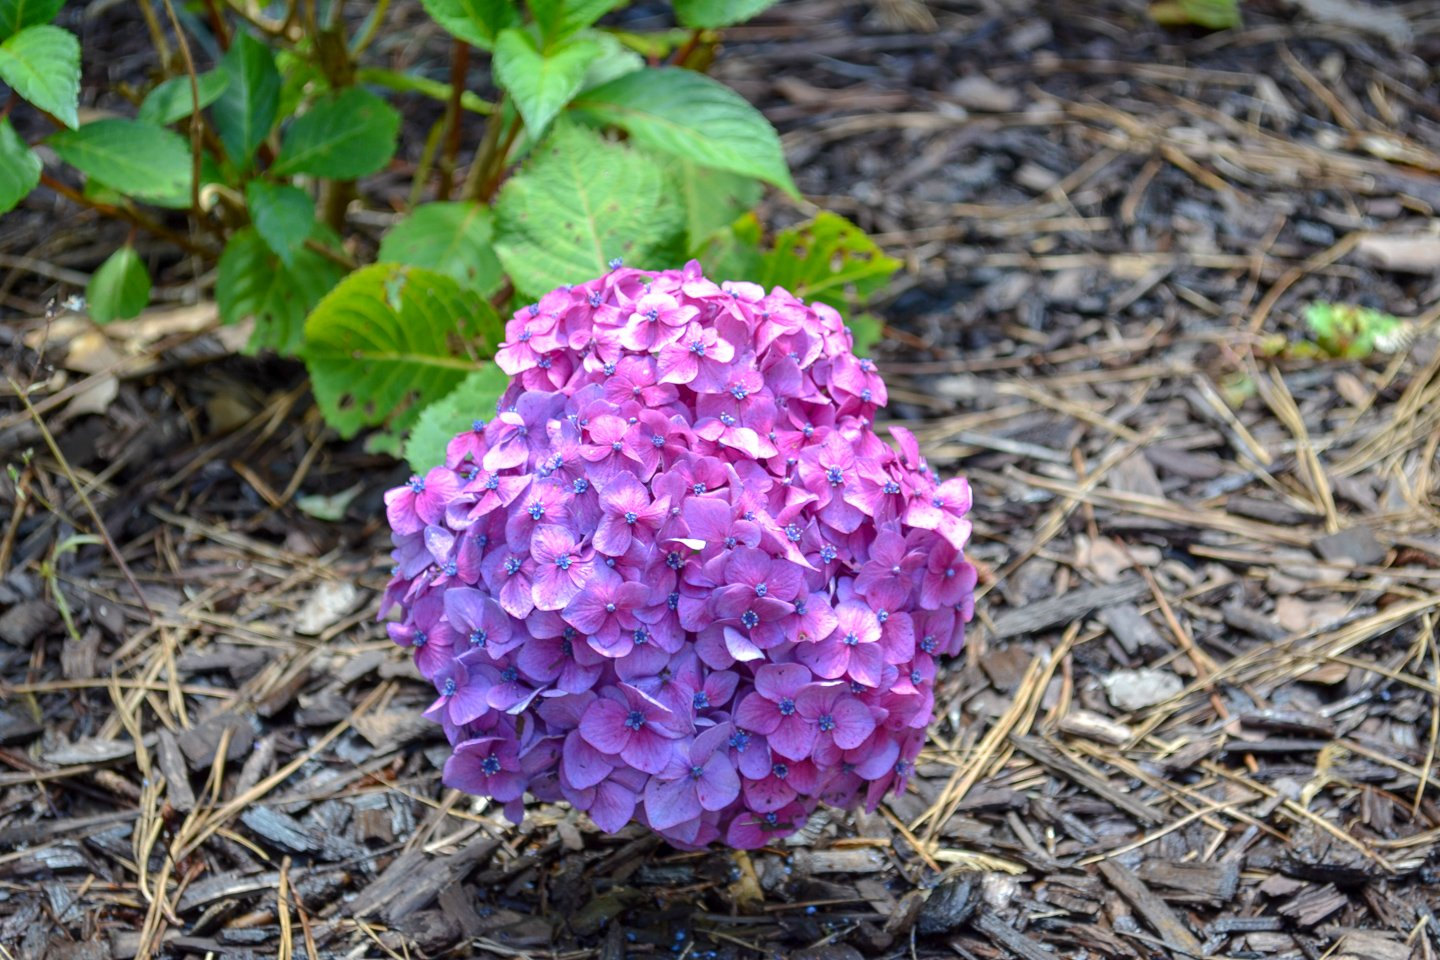 bloomstruck hydrangeas - dark purple